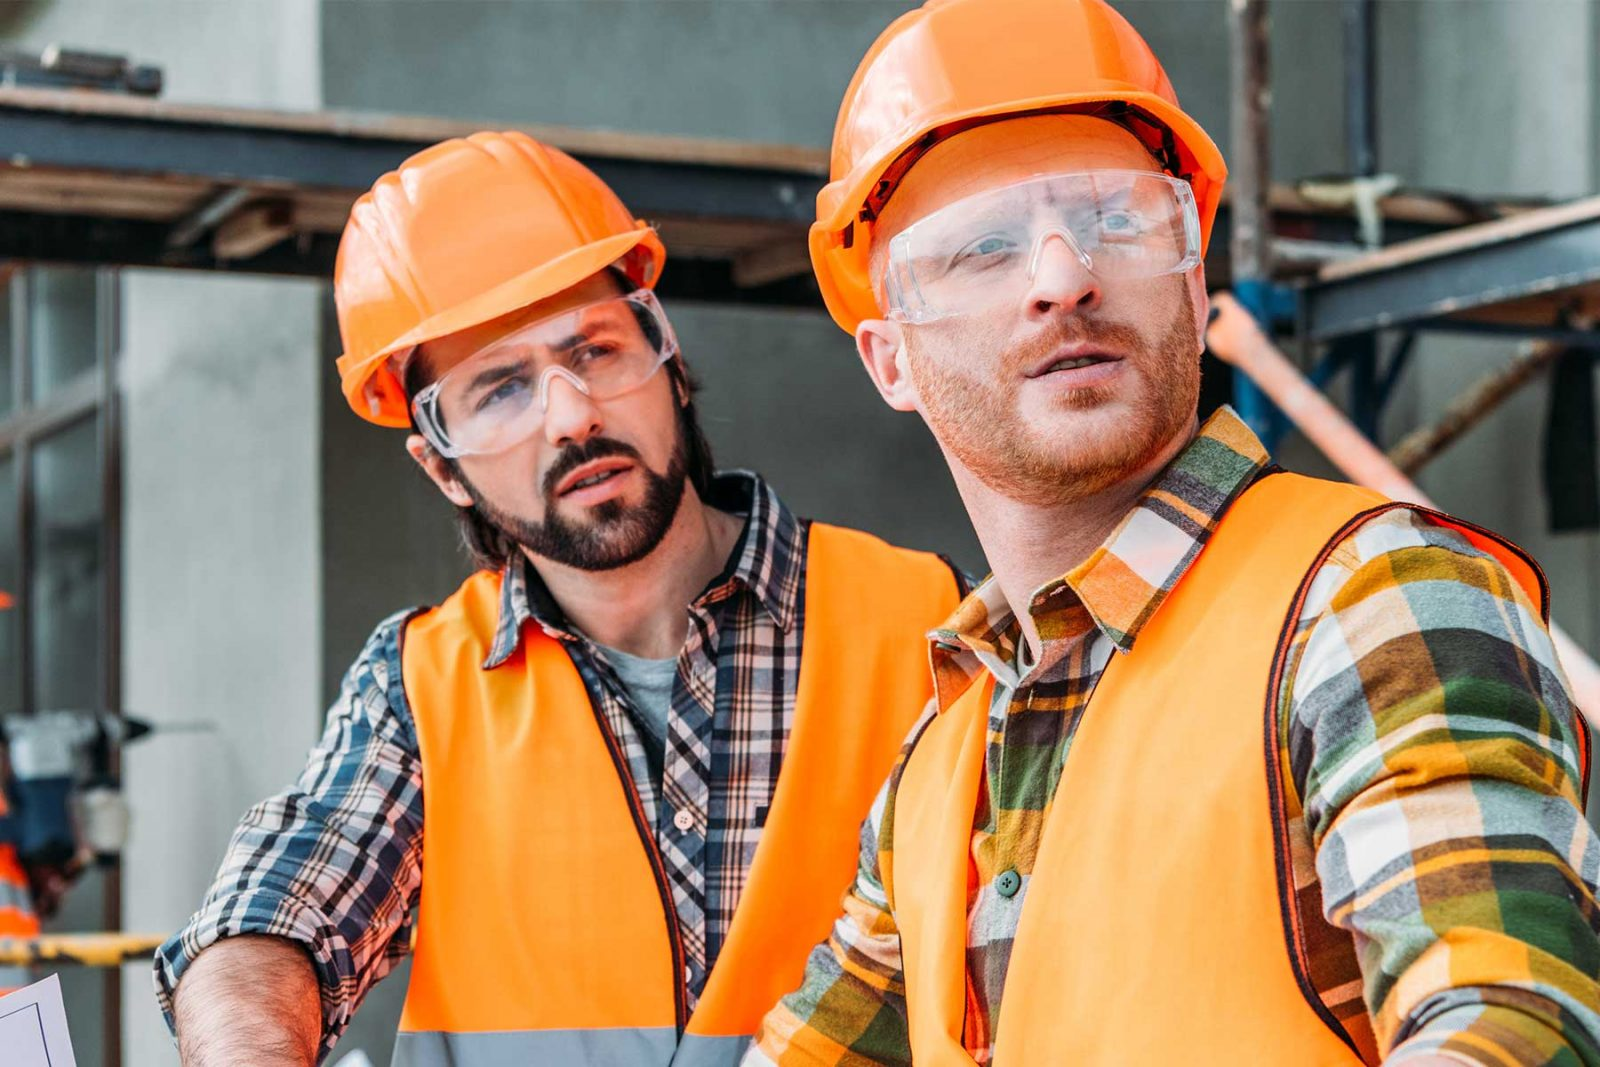 Two men disagreeing on a on a building site